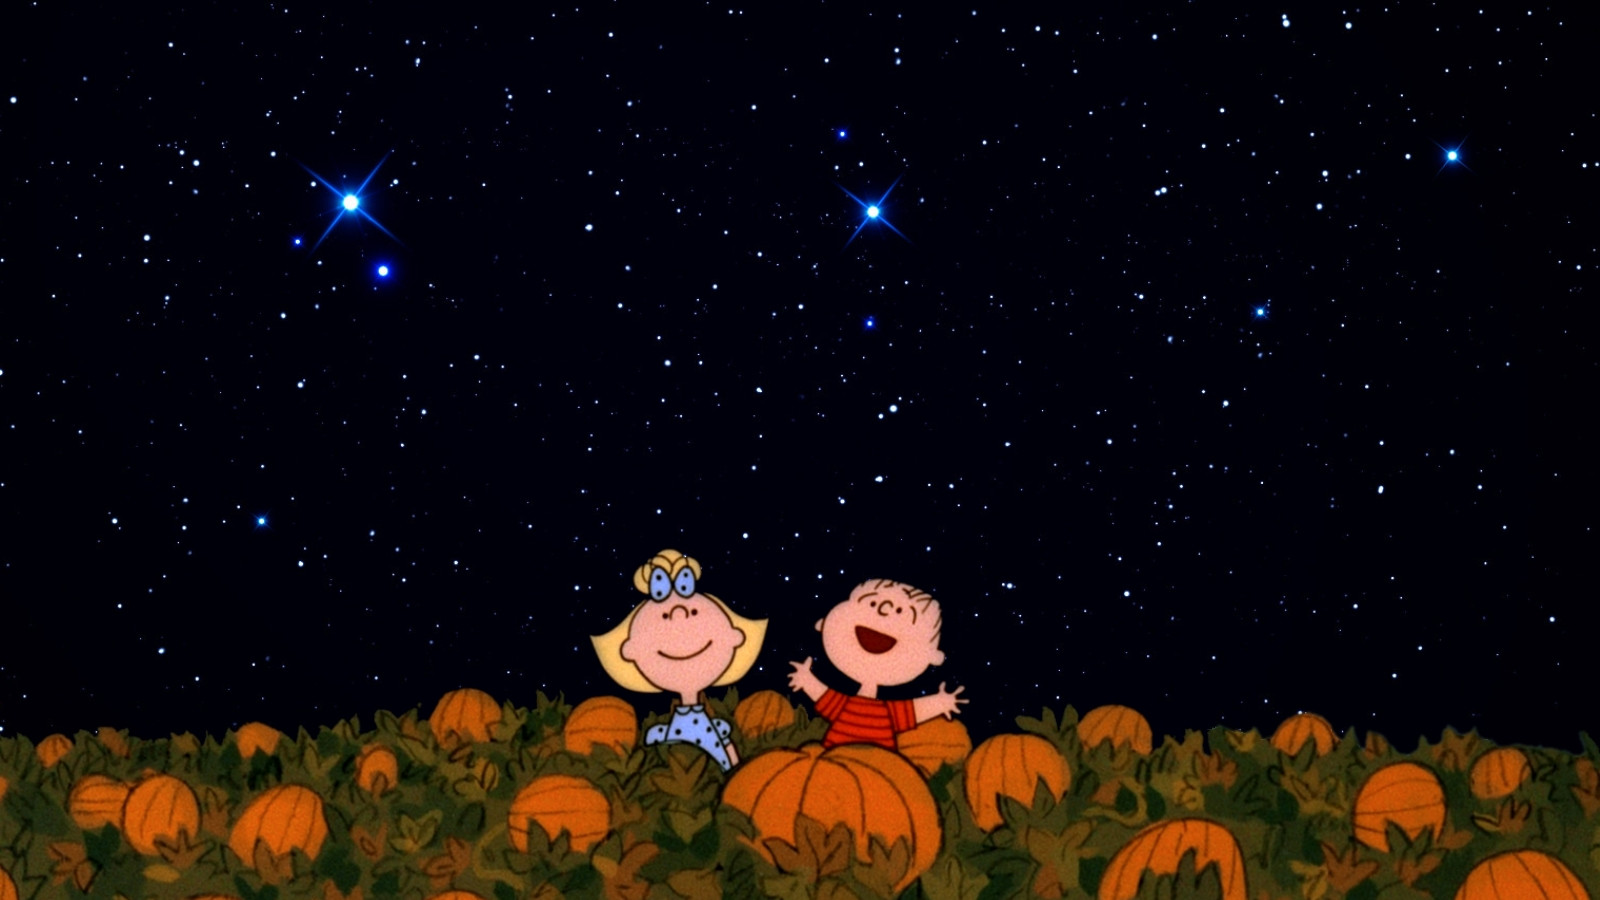 Peanuts Halloween Wallpaper2